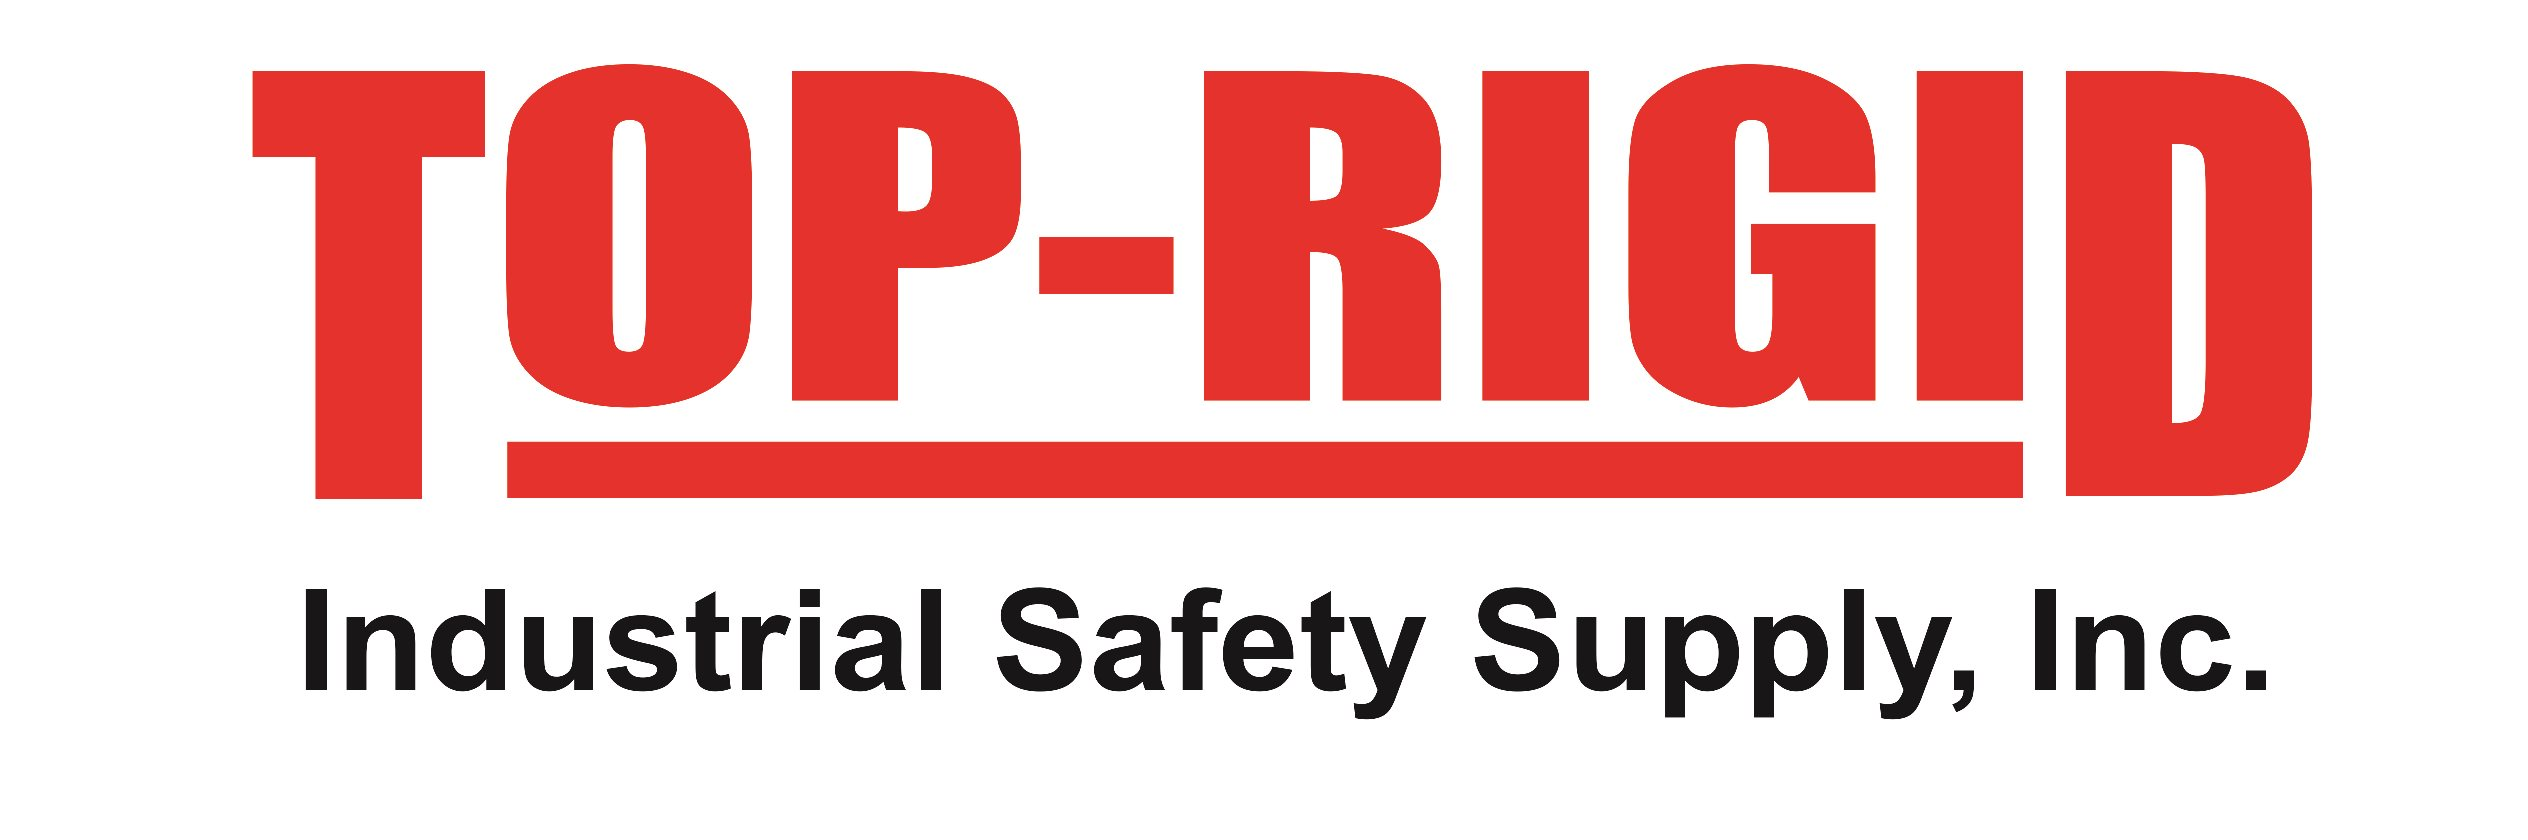 Top-Rigid Industrial Safety Supply Inc